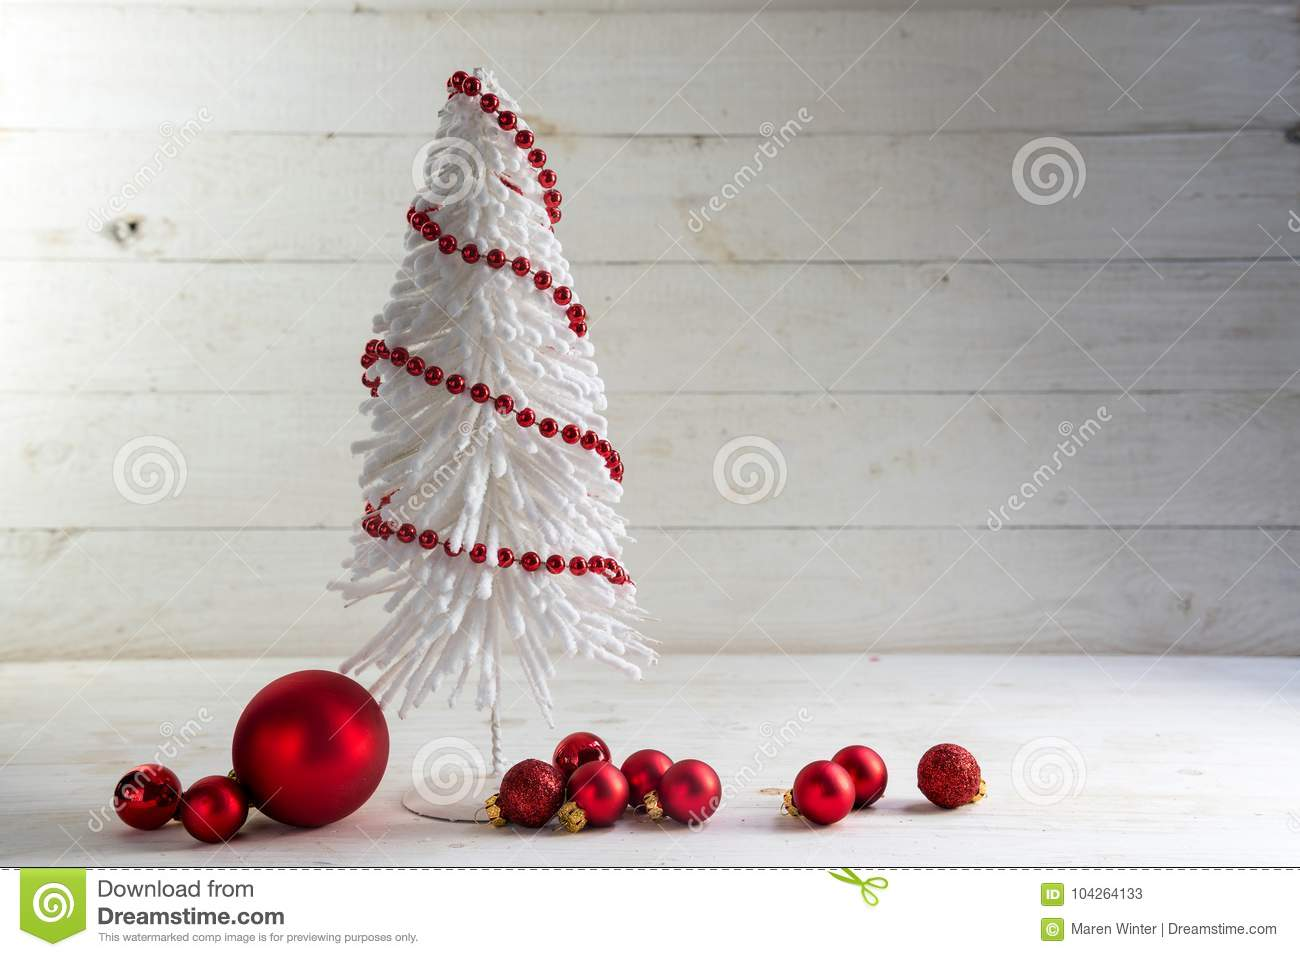 wire christmas tree stock photos download 1 243 images. Black Bedroom Furniture Sets. Home Design Ideas